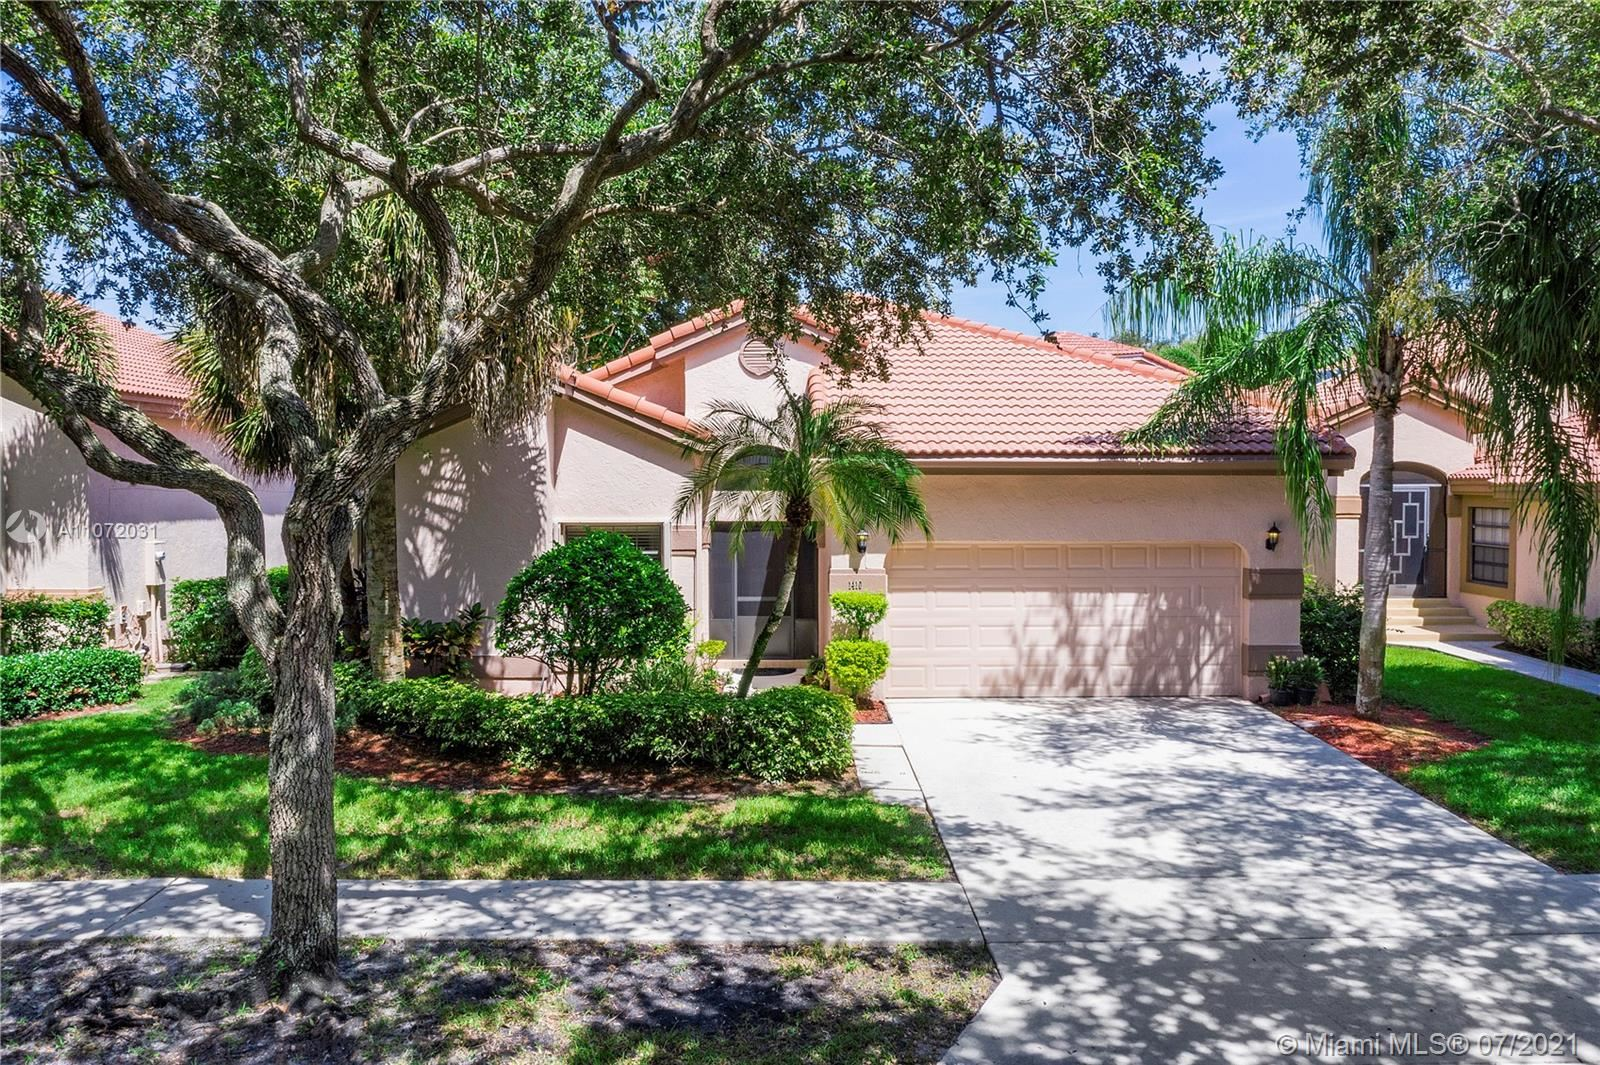 Photo of 1410 NW 104th Ave, Plantation, FL 33322 (MLS # A11072031)